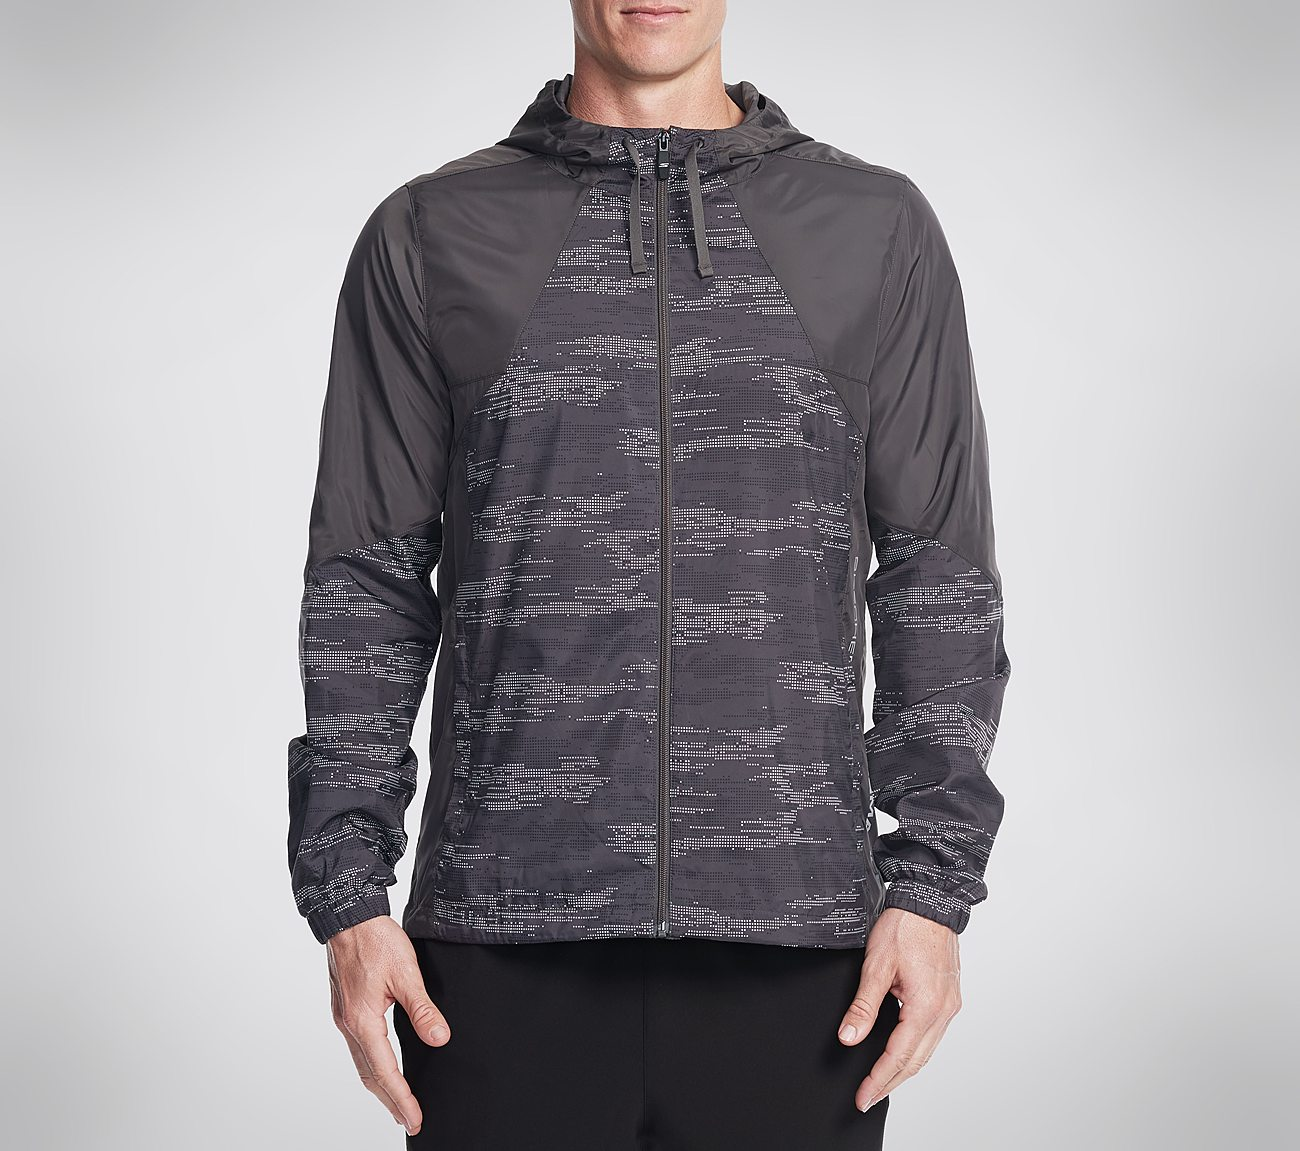 Plano personalidad incompleto  Buy SKECHERS Bayview Jacket Jackets and Hoodies Shoes